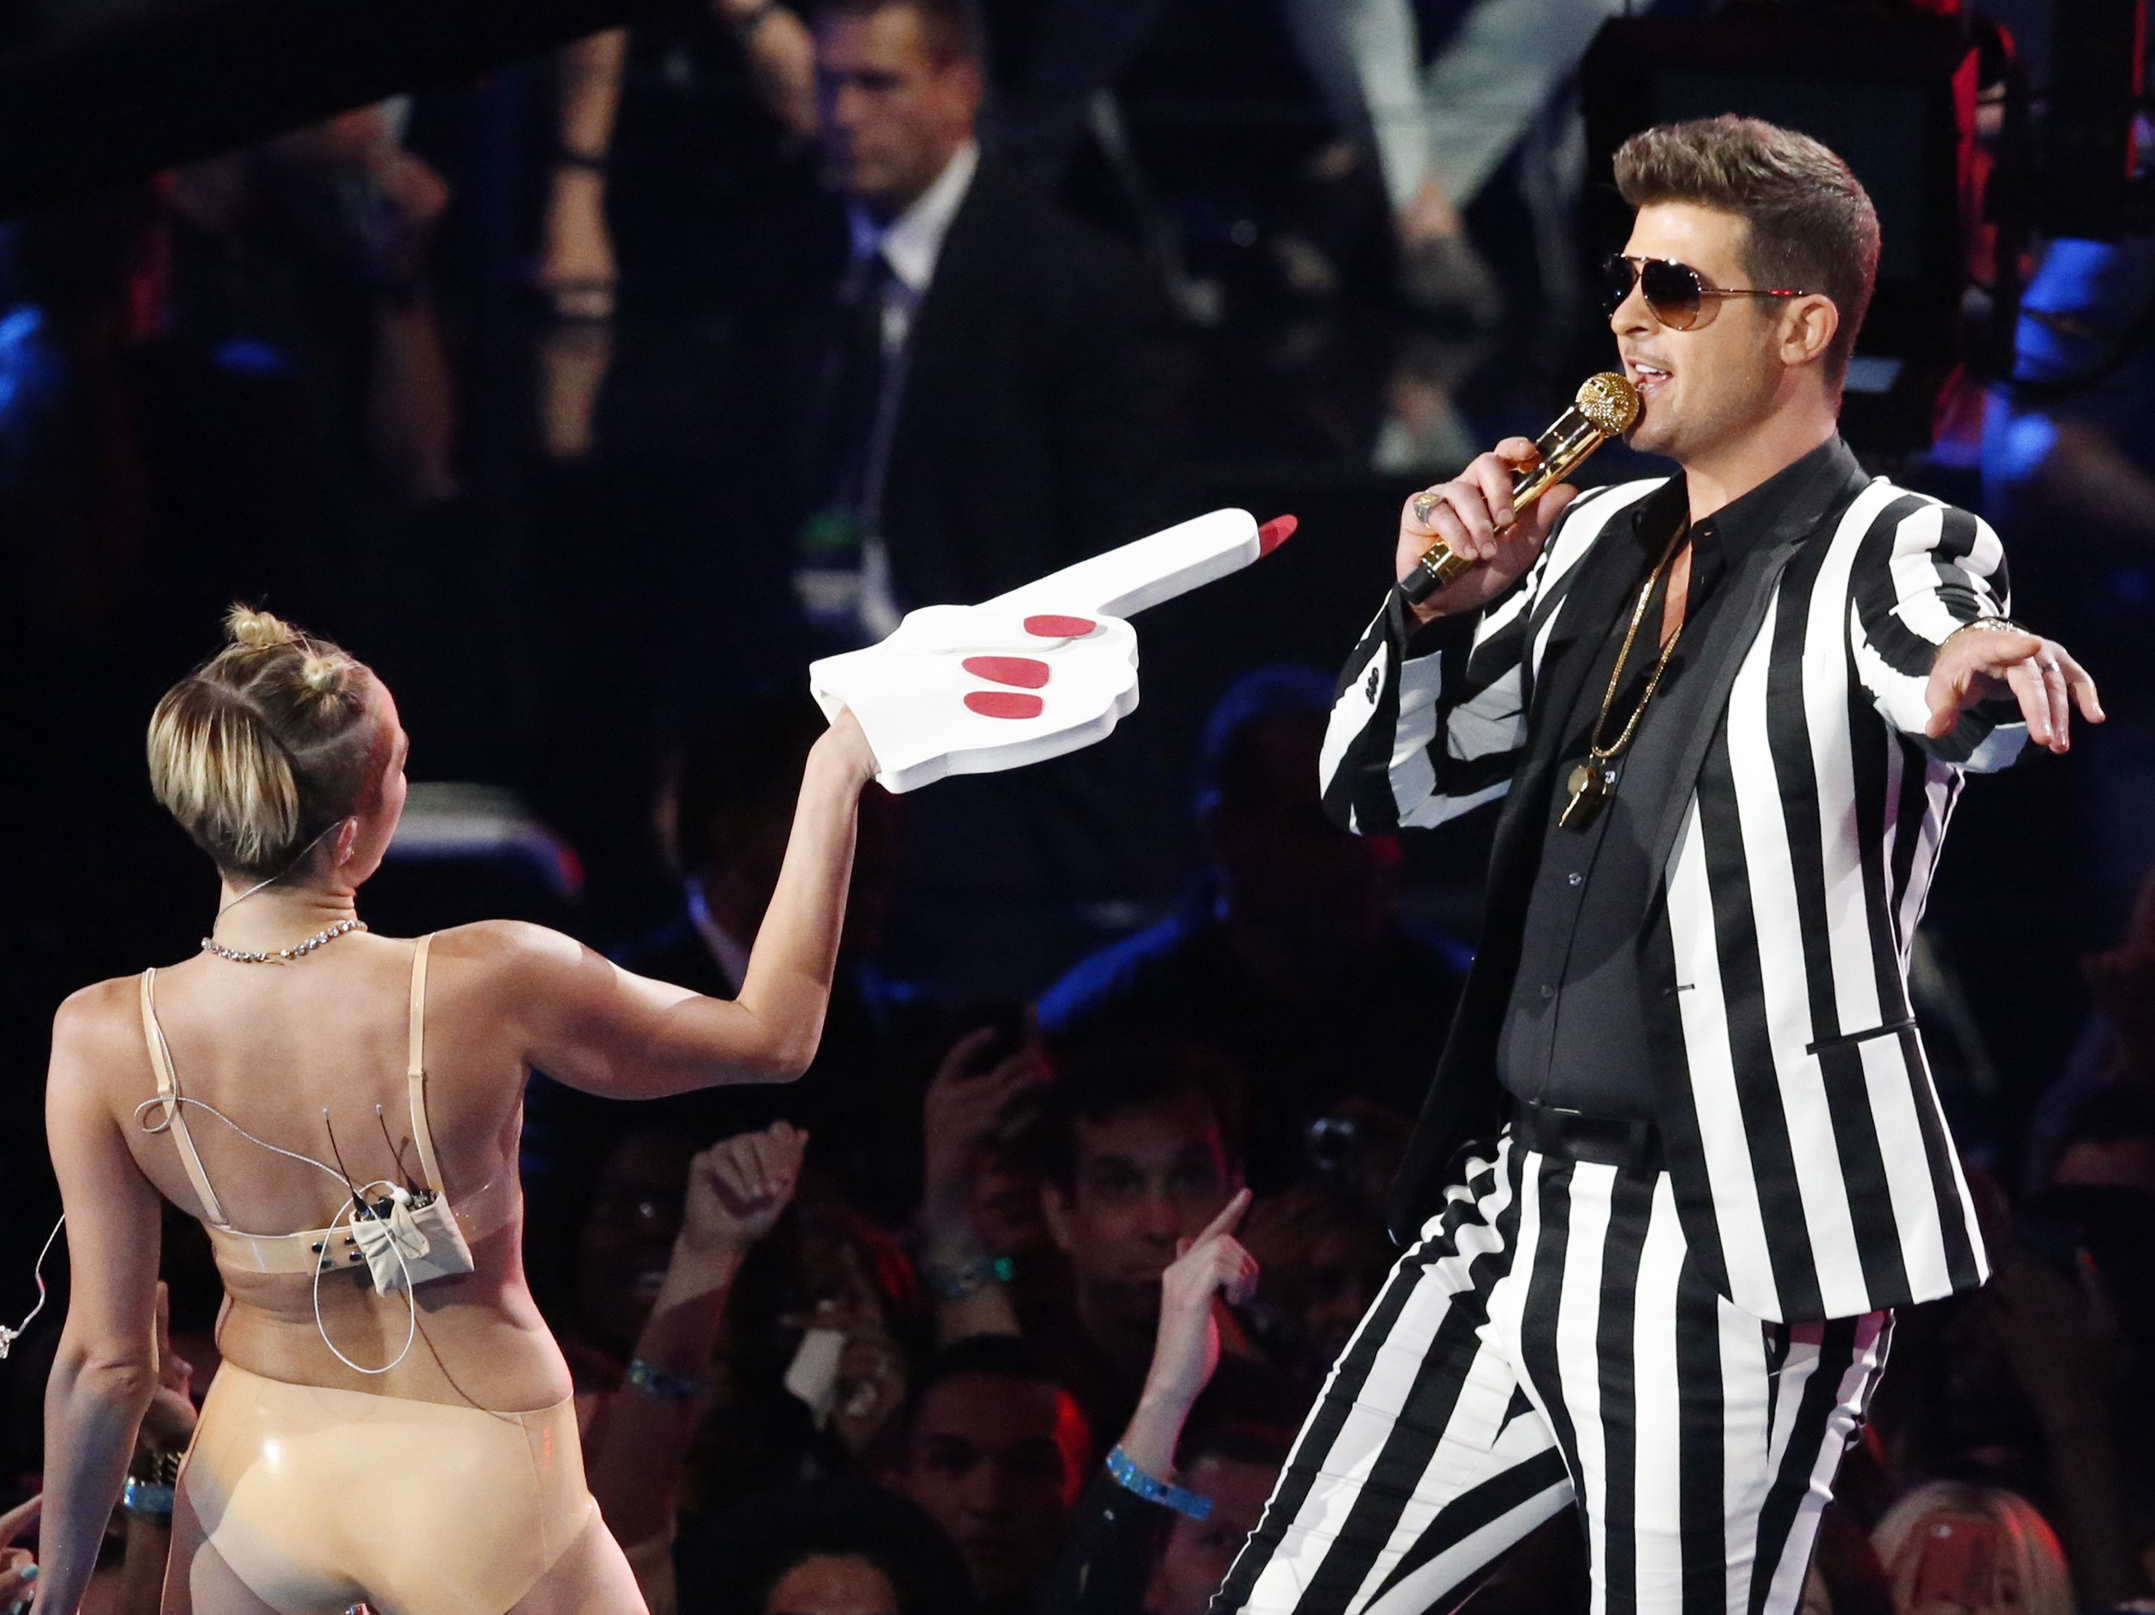 Did Miley Cyrus 'Flirt With Bad Taste' Or Dive Right In?